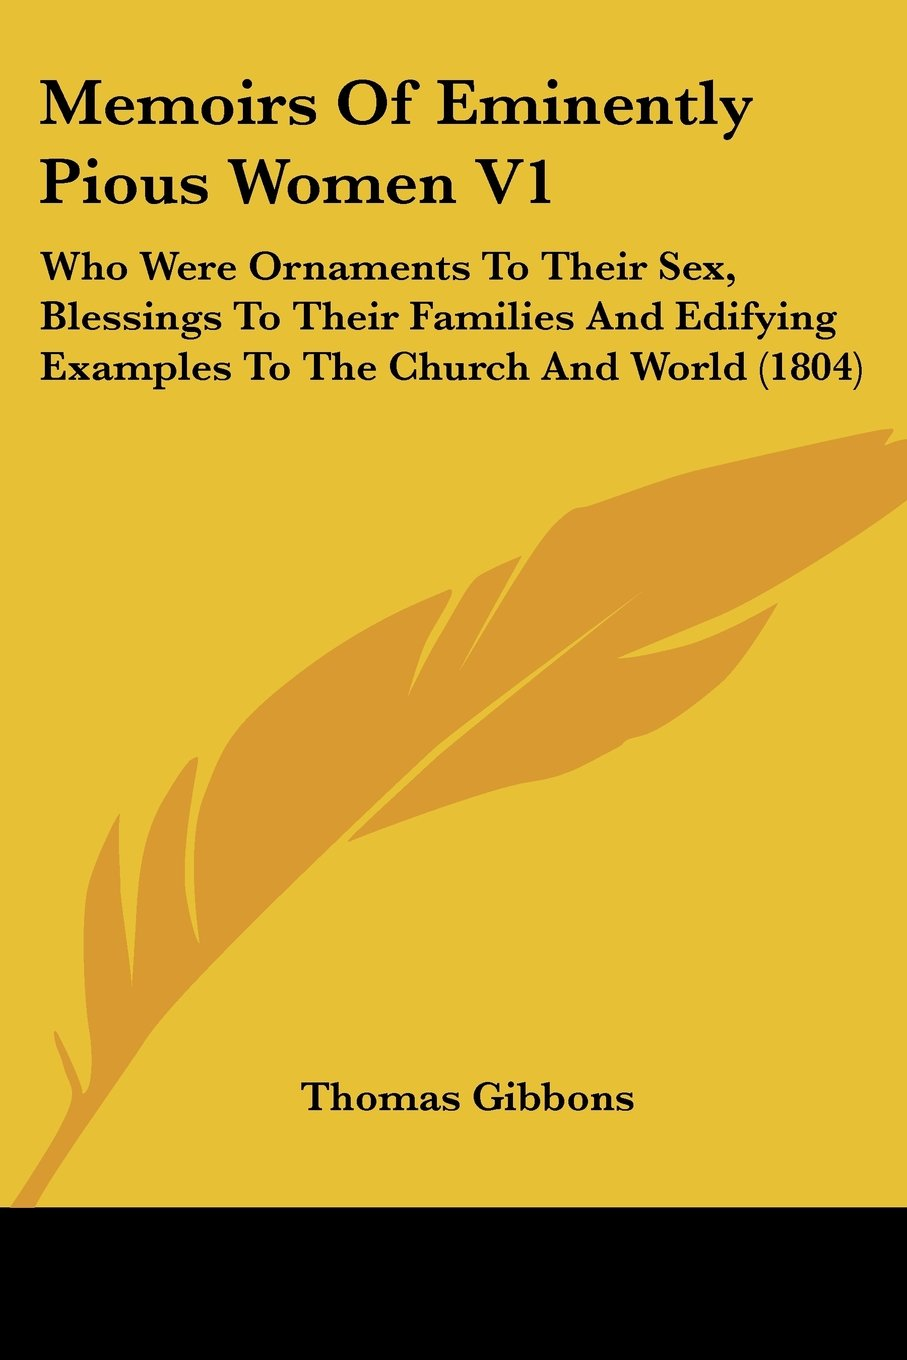 Read Online Memoirs Of Eminently Pious Women V1: Who Were Ornaments To Their Sex, Blessings To Their Families And Edifying Examples To The Church And World (1804) pdf